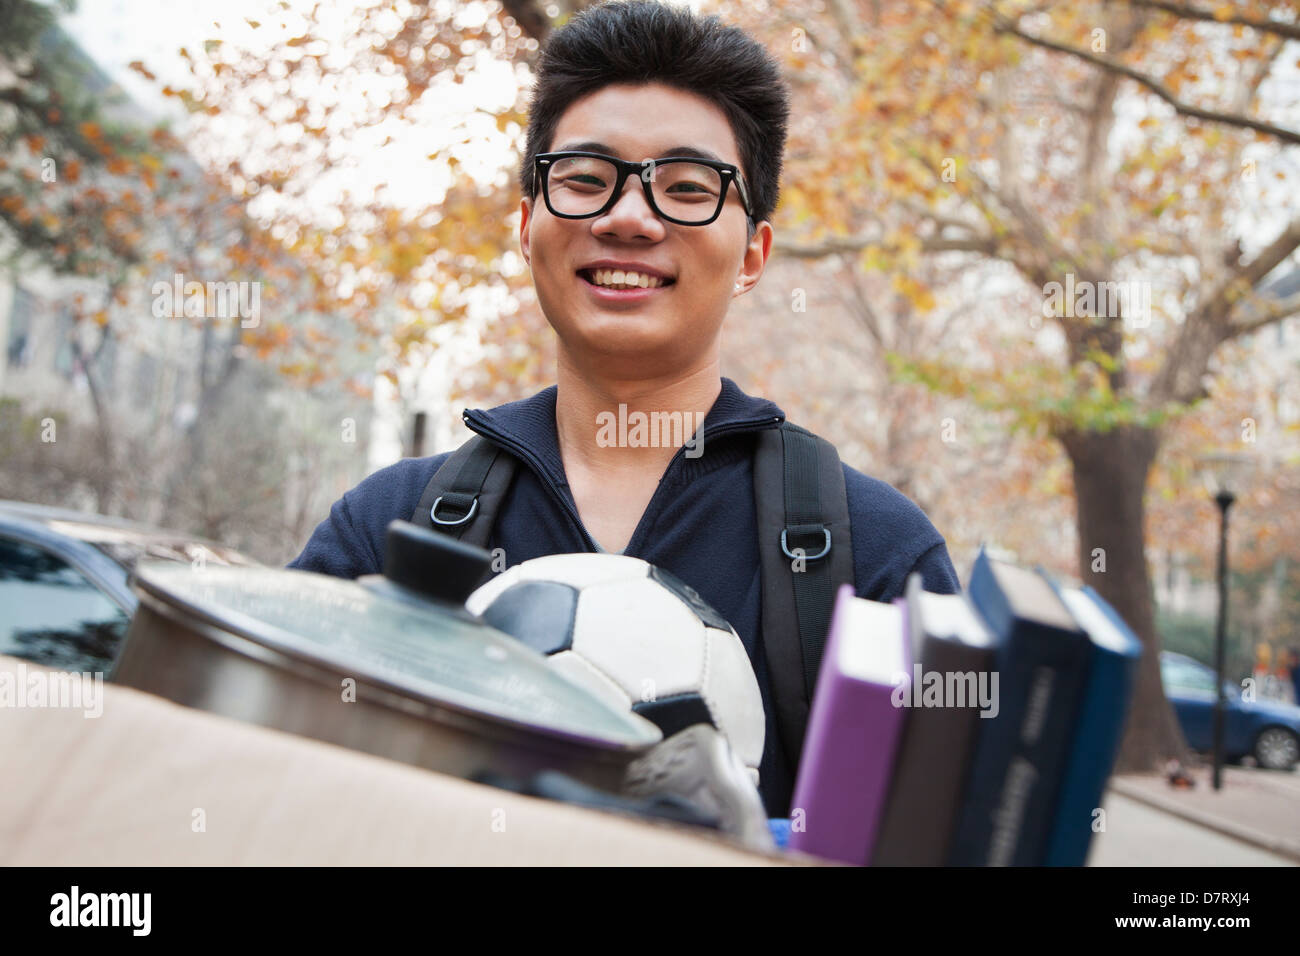 Student in front of dormitory at college - Stock Image